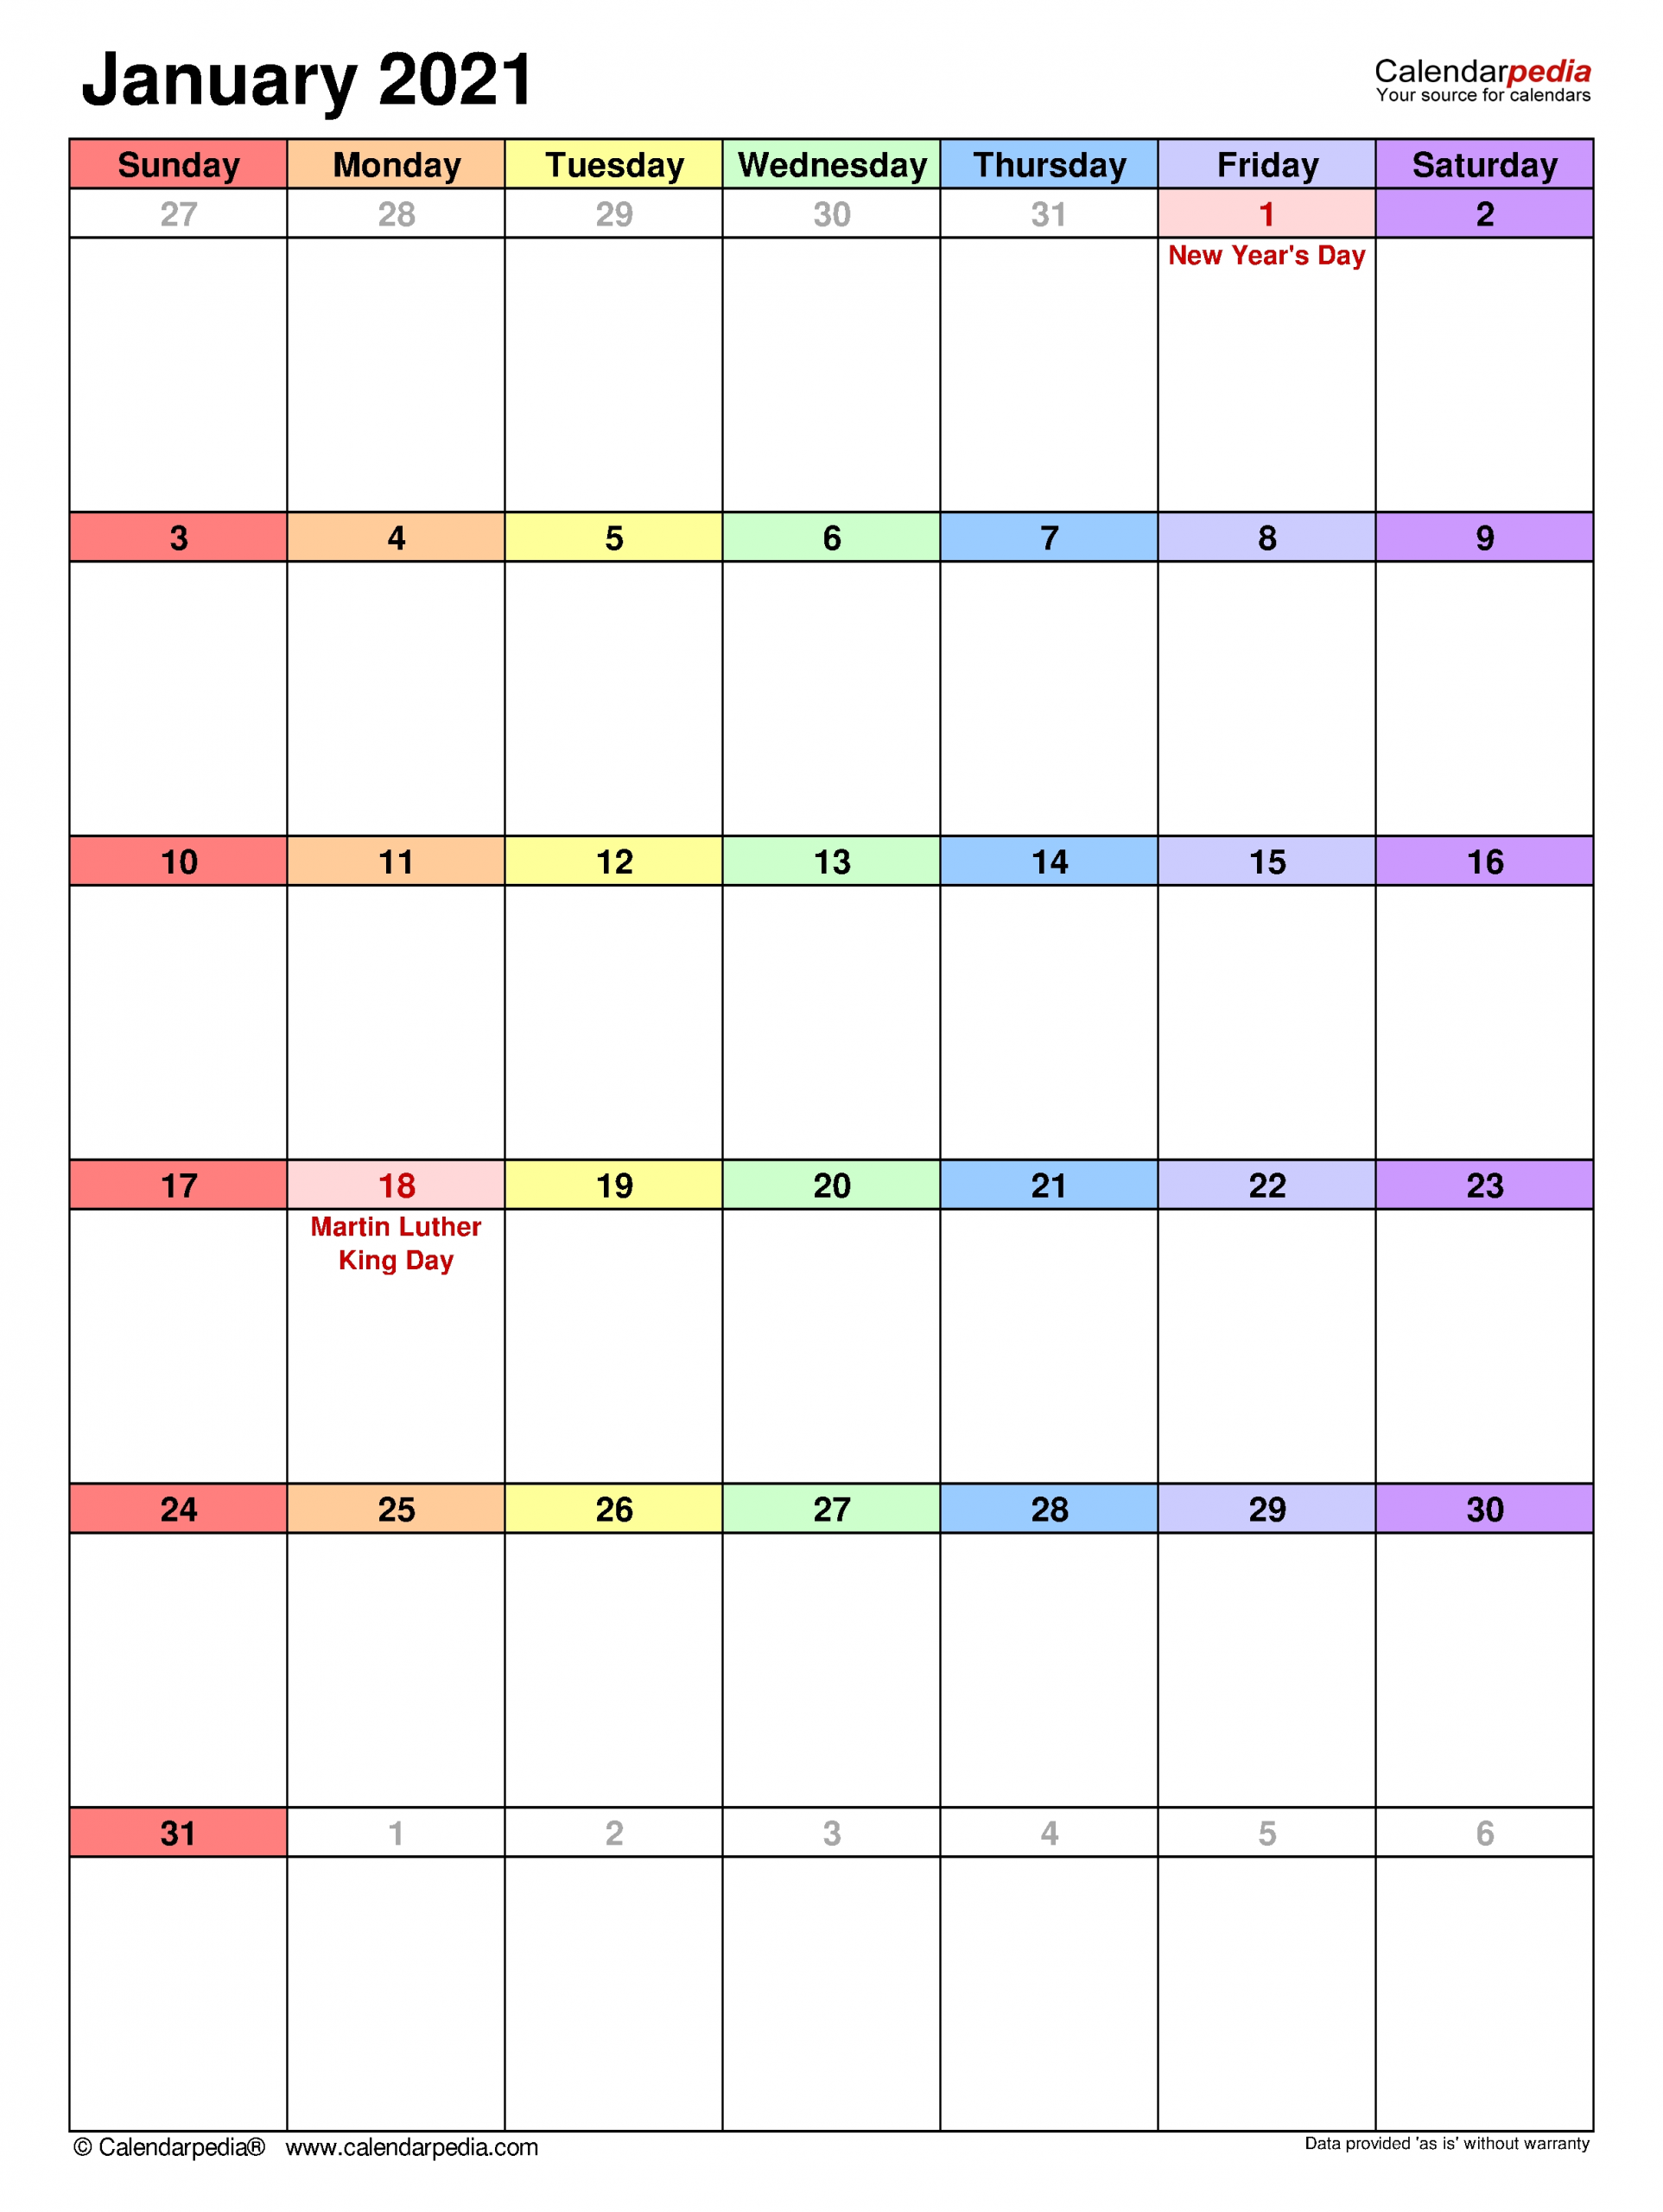 January 2021 Calendar | Templates For Word, Excel And Pdf-Fill In Calendar For 2021